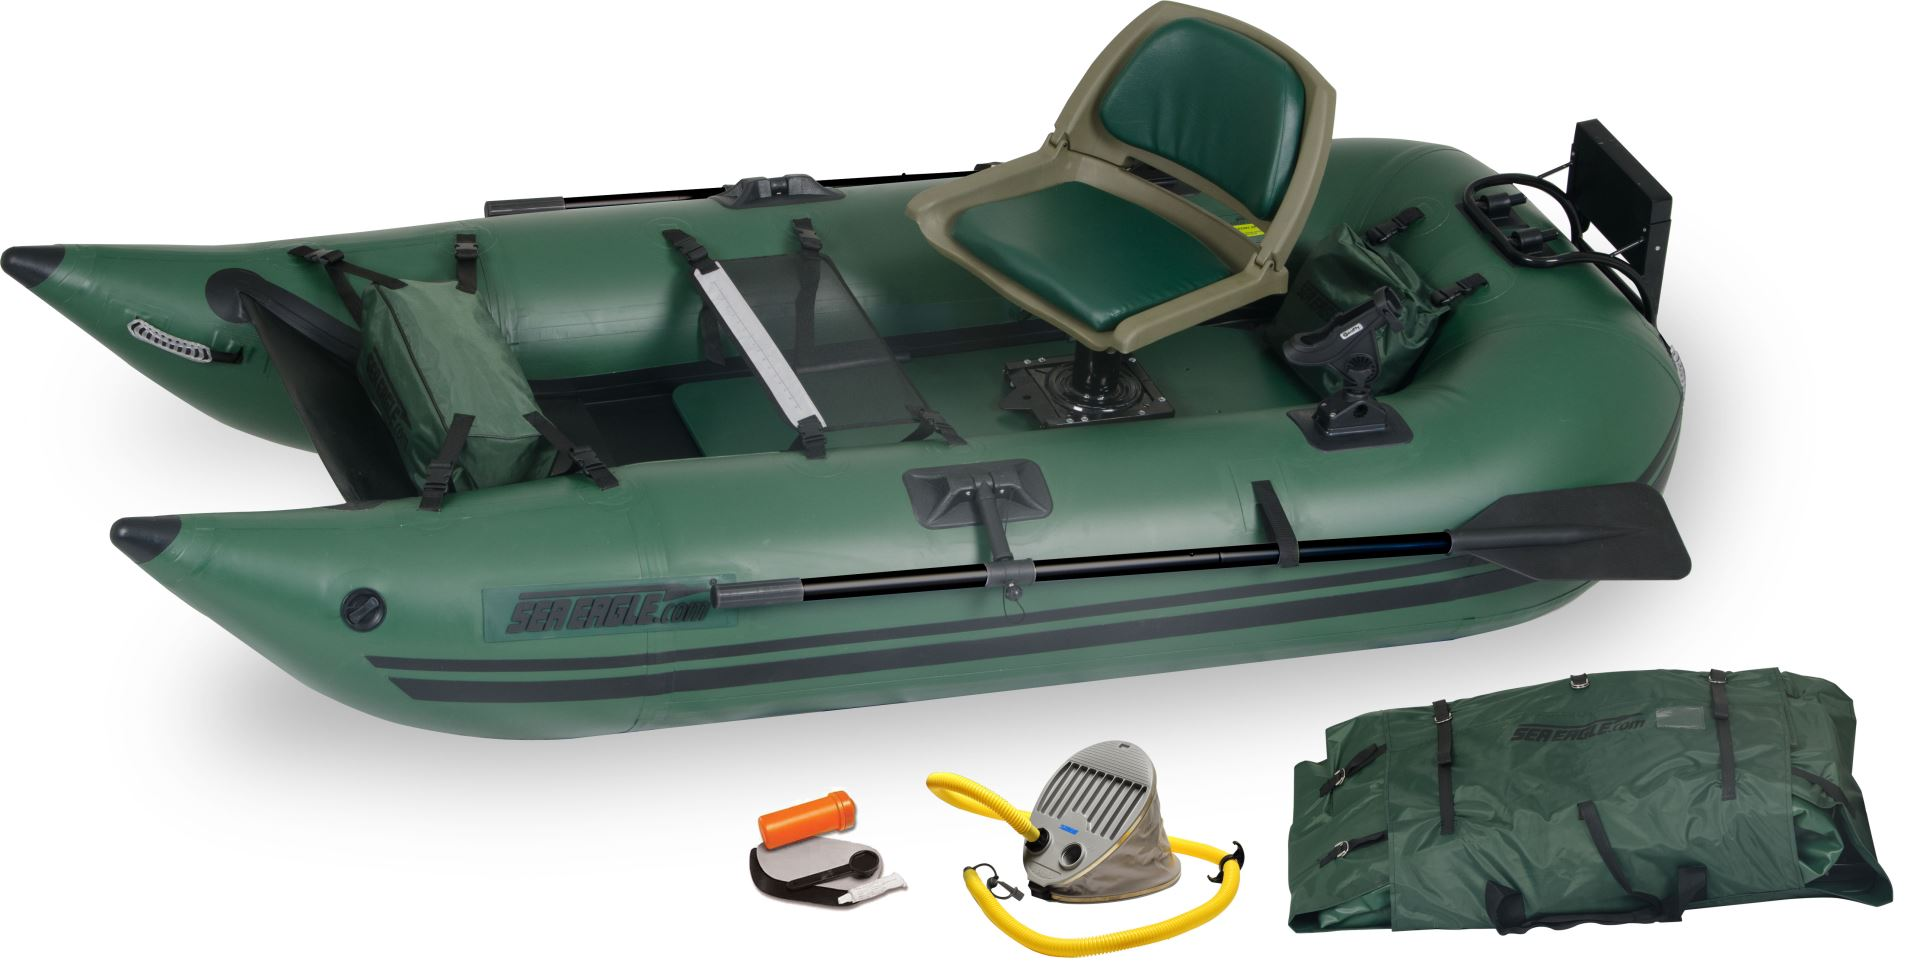 Sea Eagle Frameless Fishing Boats